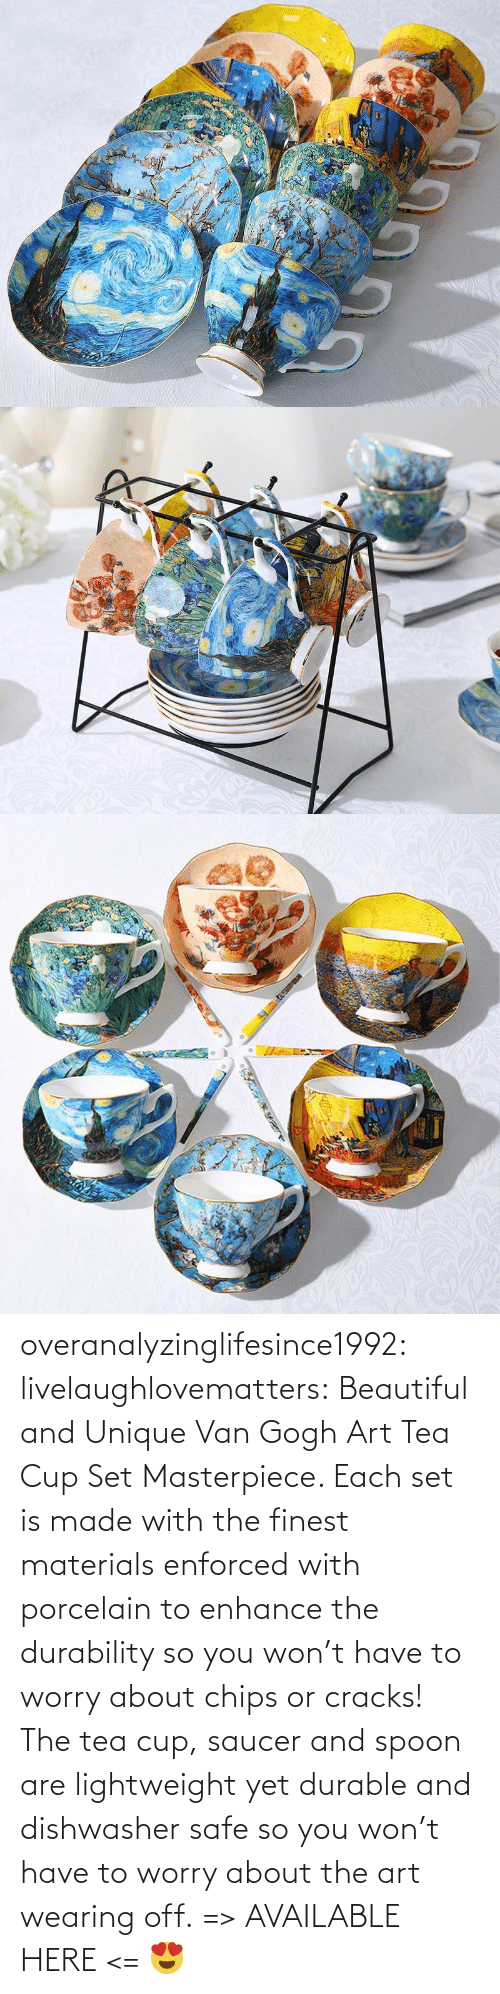 Have: overanalyzinglifesince1992: livelaughlovematters:  Beautiful and Unique Van Gogh Art Tea Cup Set Masterpiece. Each set is made with the finest materials enforced with porcelain to enhance the durability so you won't have to worry about chips or cracks! The tea cup, saucer and spoon are lightweight yet durable and dishwasher safe so you won't have to worry about the art wearing off. => AVAILABLE HERE <=    😍